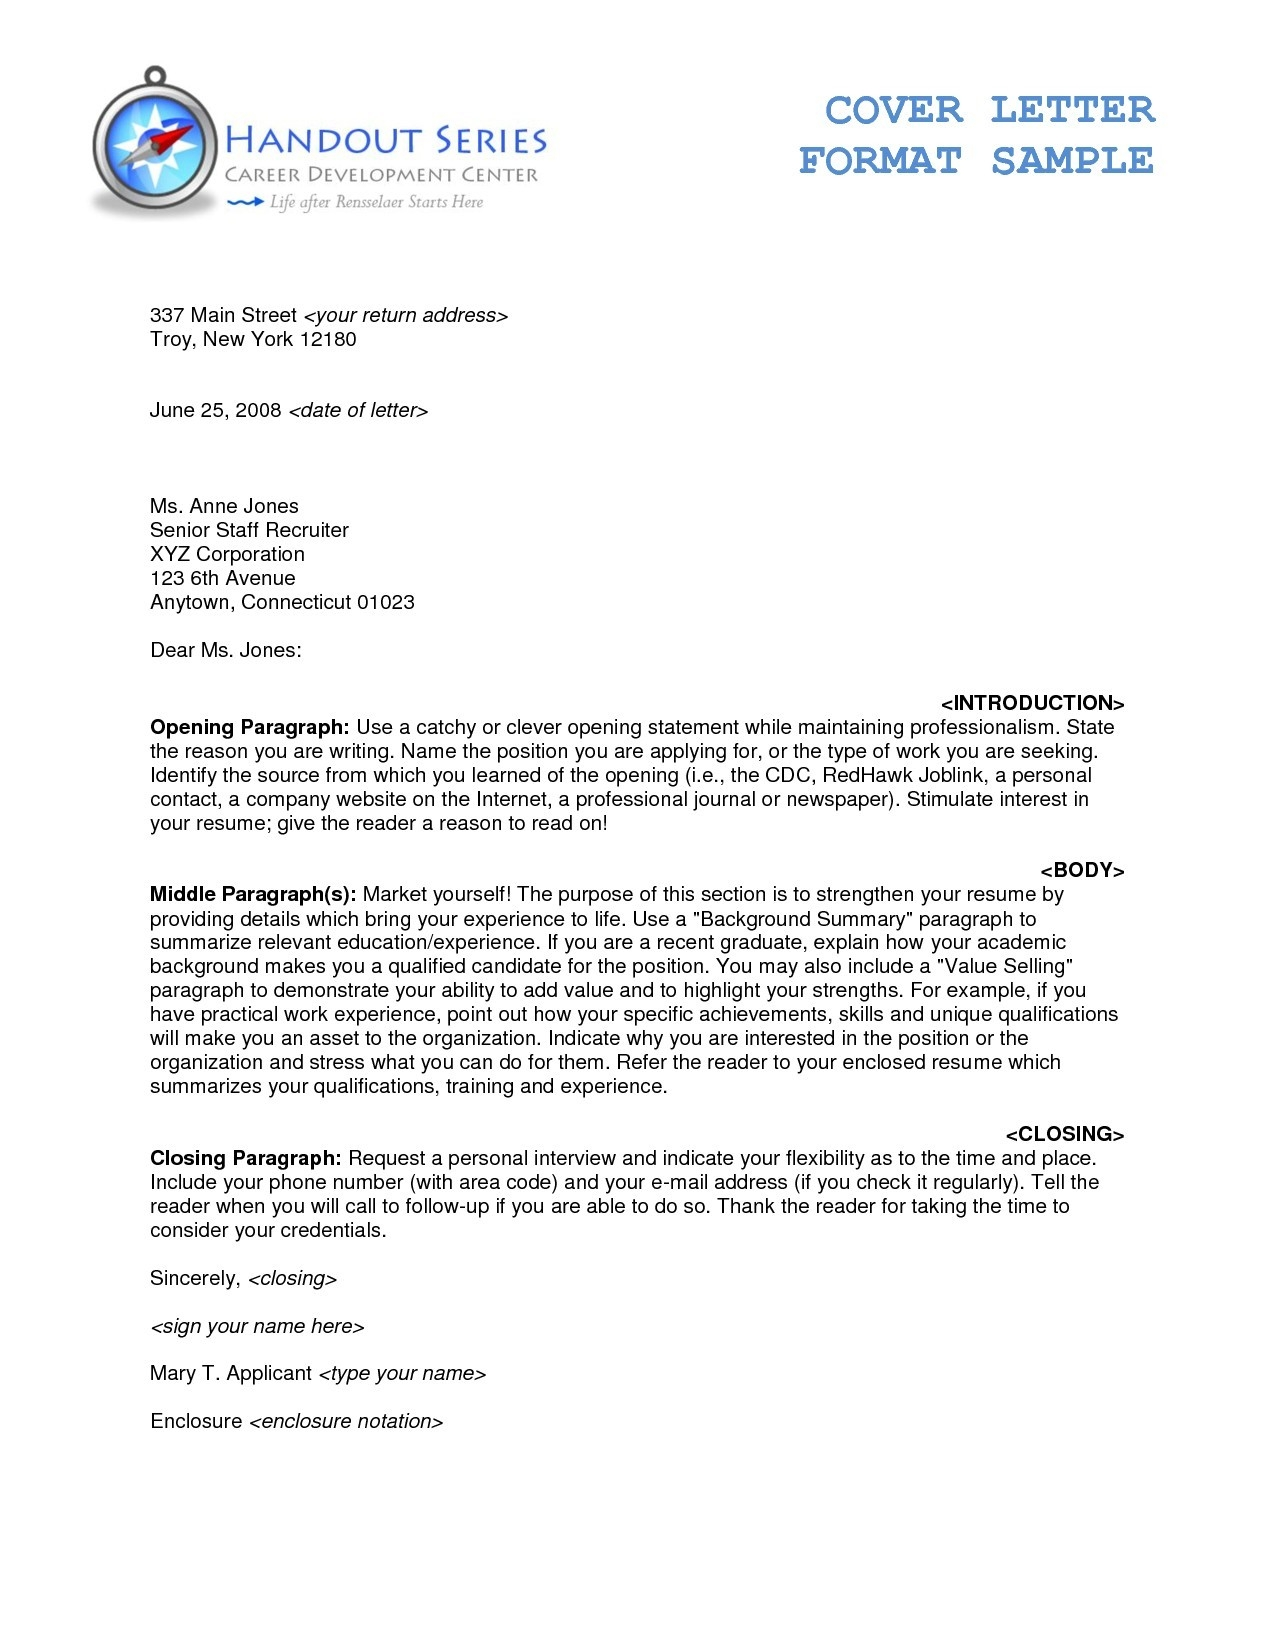 Business Letter Format Example With Enclosure New Best S Of inside Business Letter Format Example With Enclosure 21841